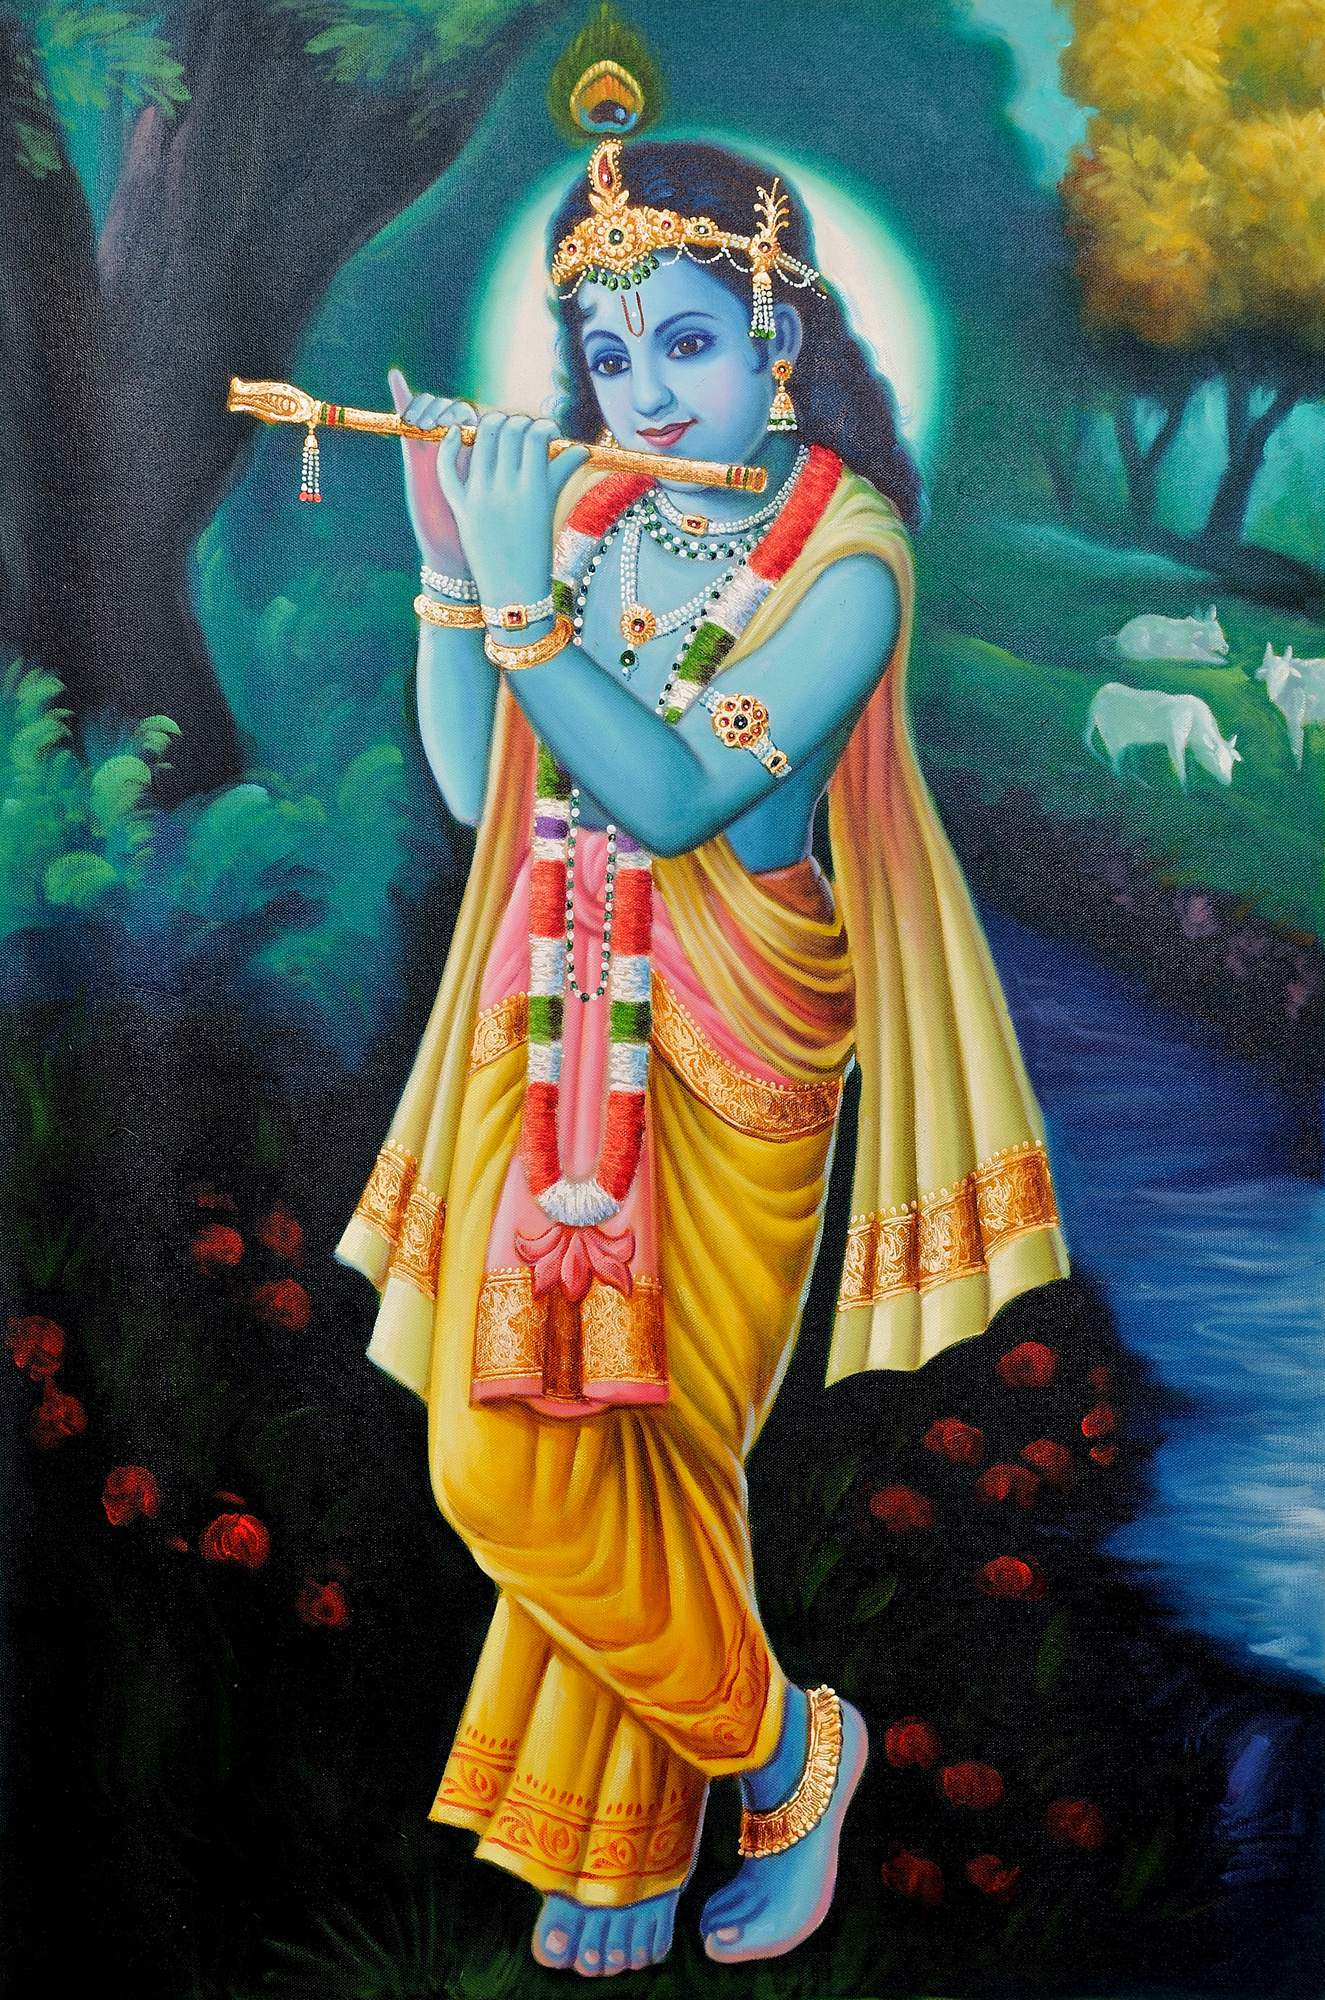 Shri Krishna Playing His Flute in the Grove of Vrindavan